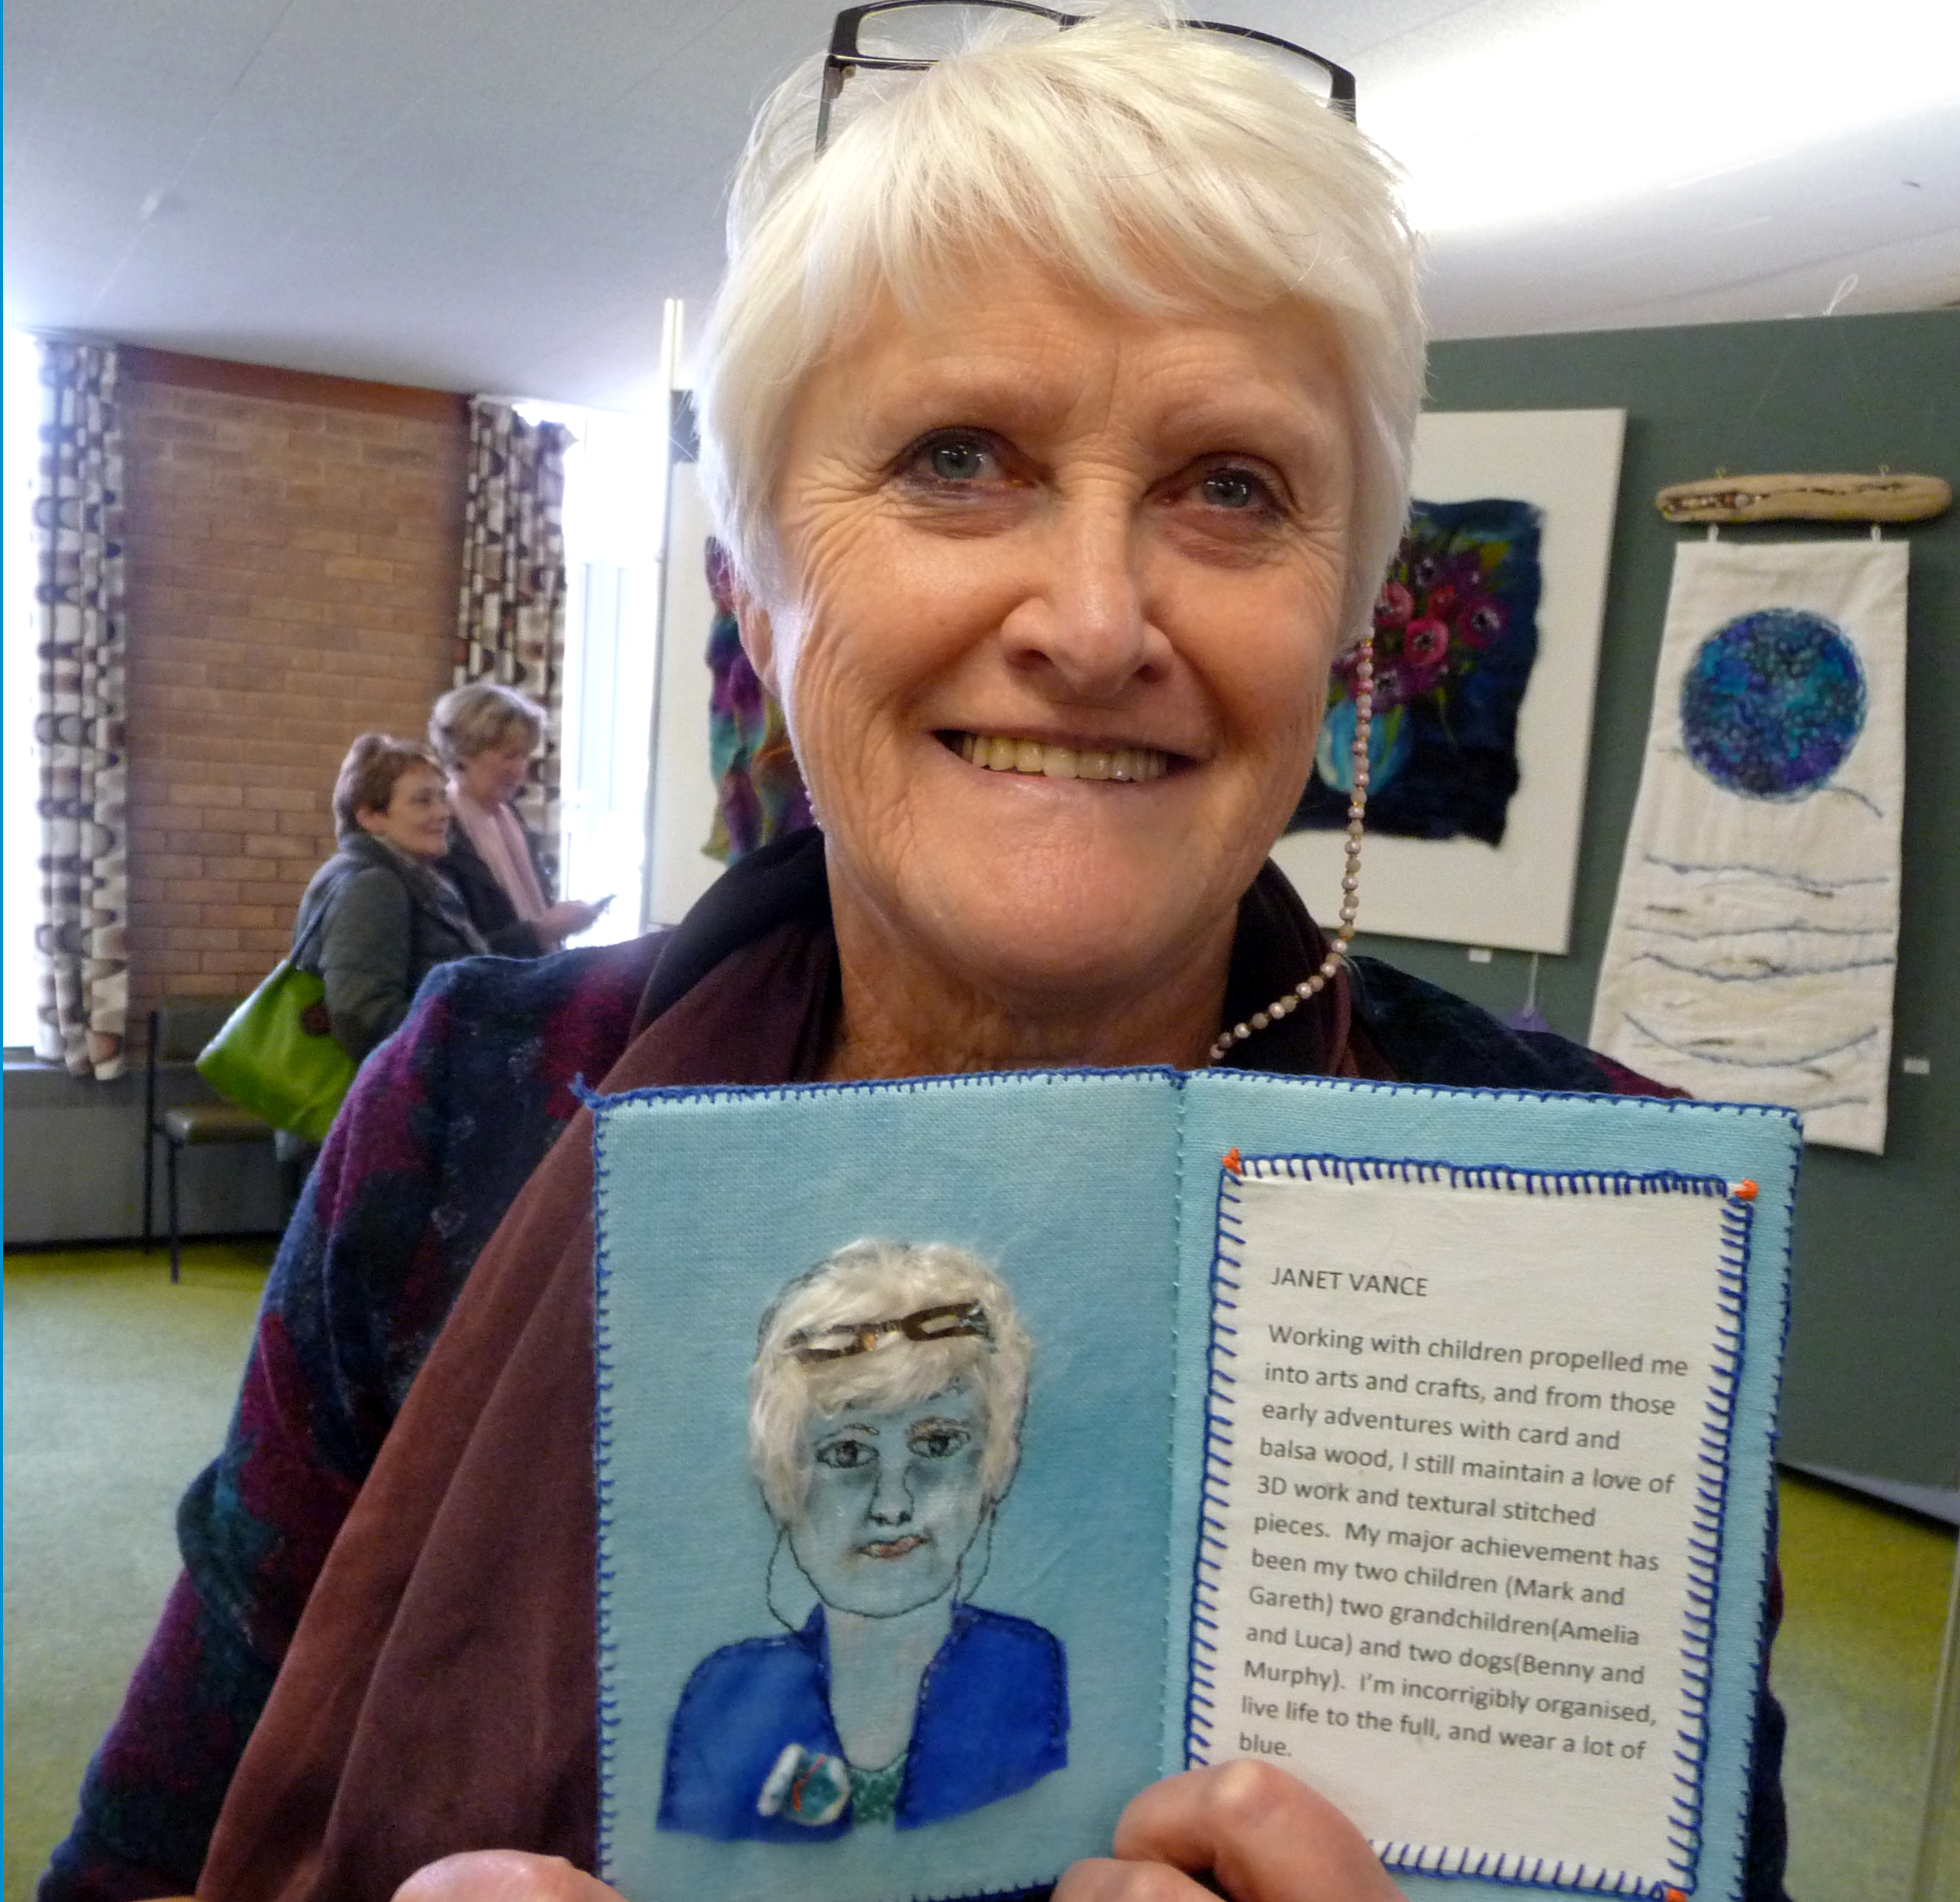 Janet Vance with her embroidered self portrait